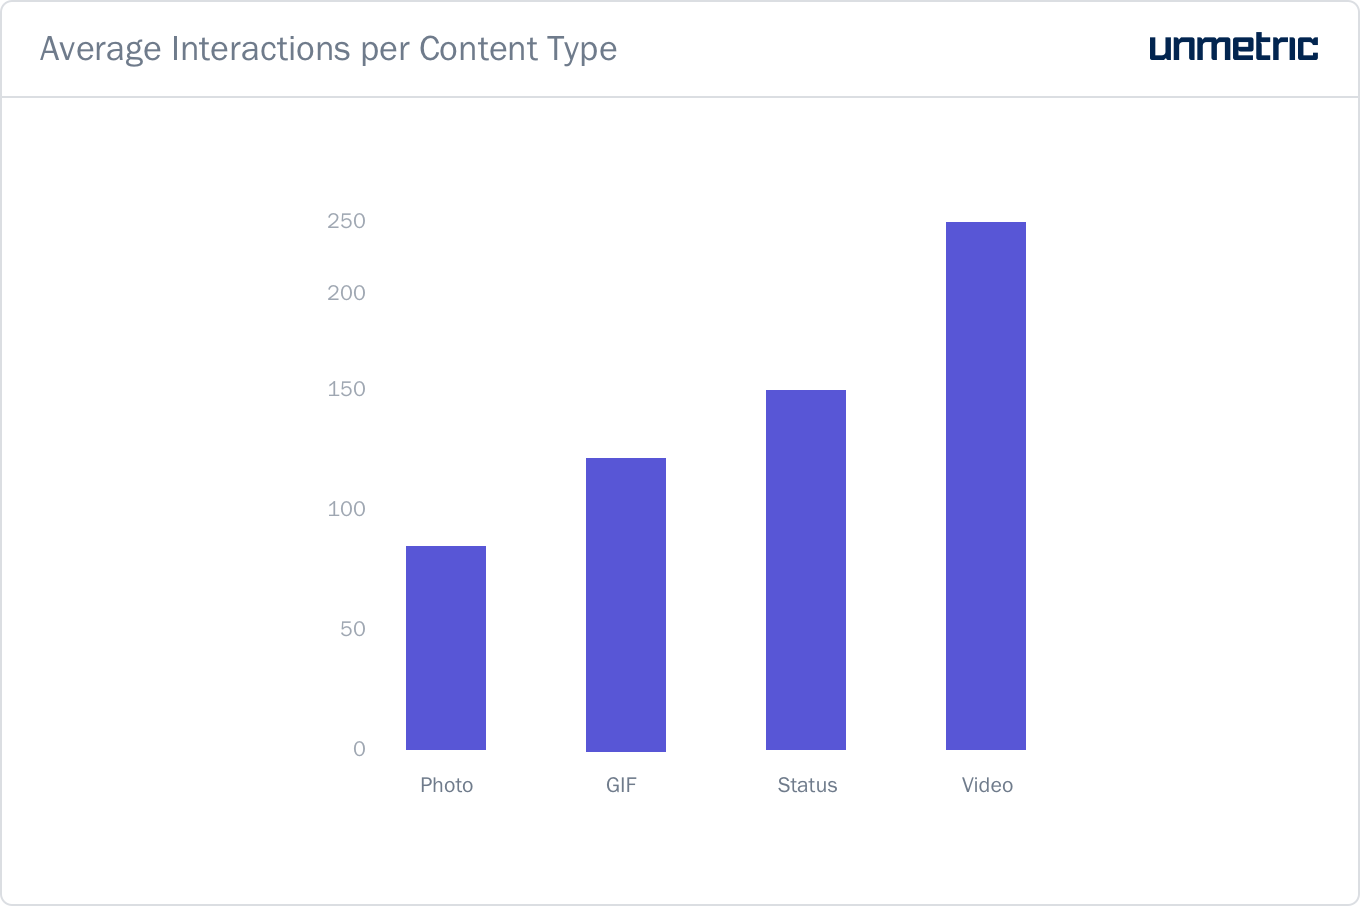 Average interactions per content type